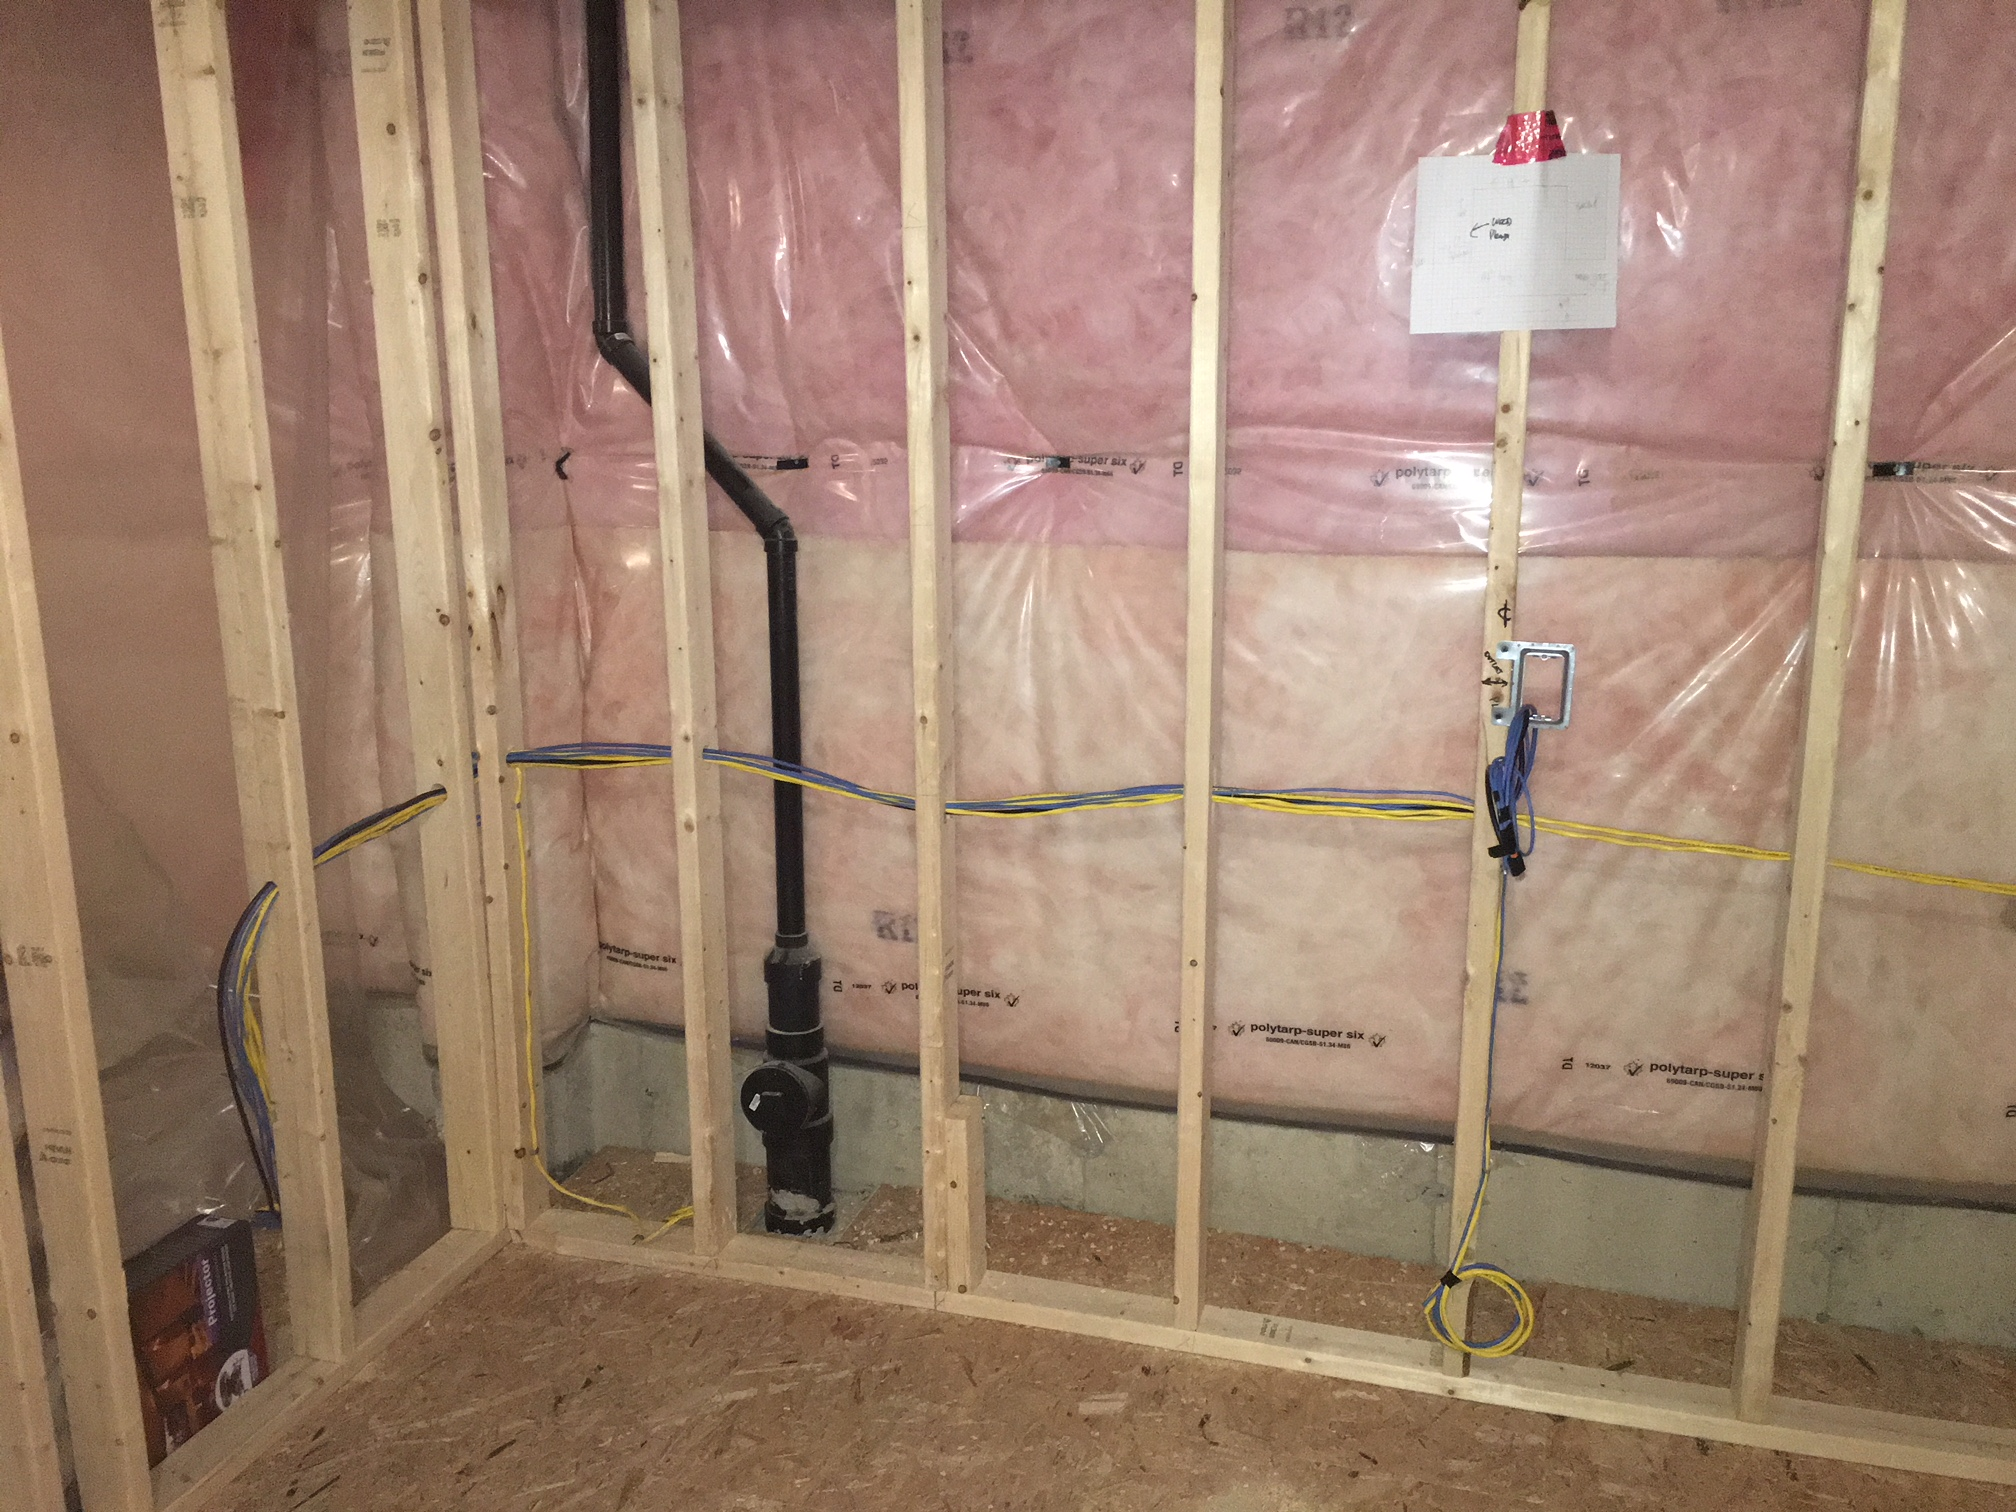 front wall wiring 2.JPG